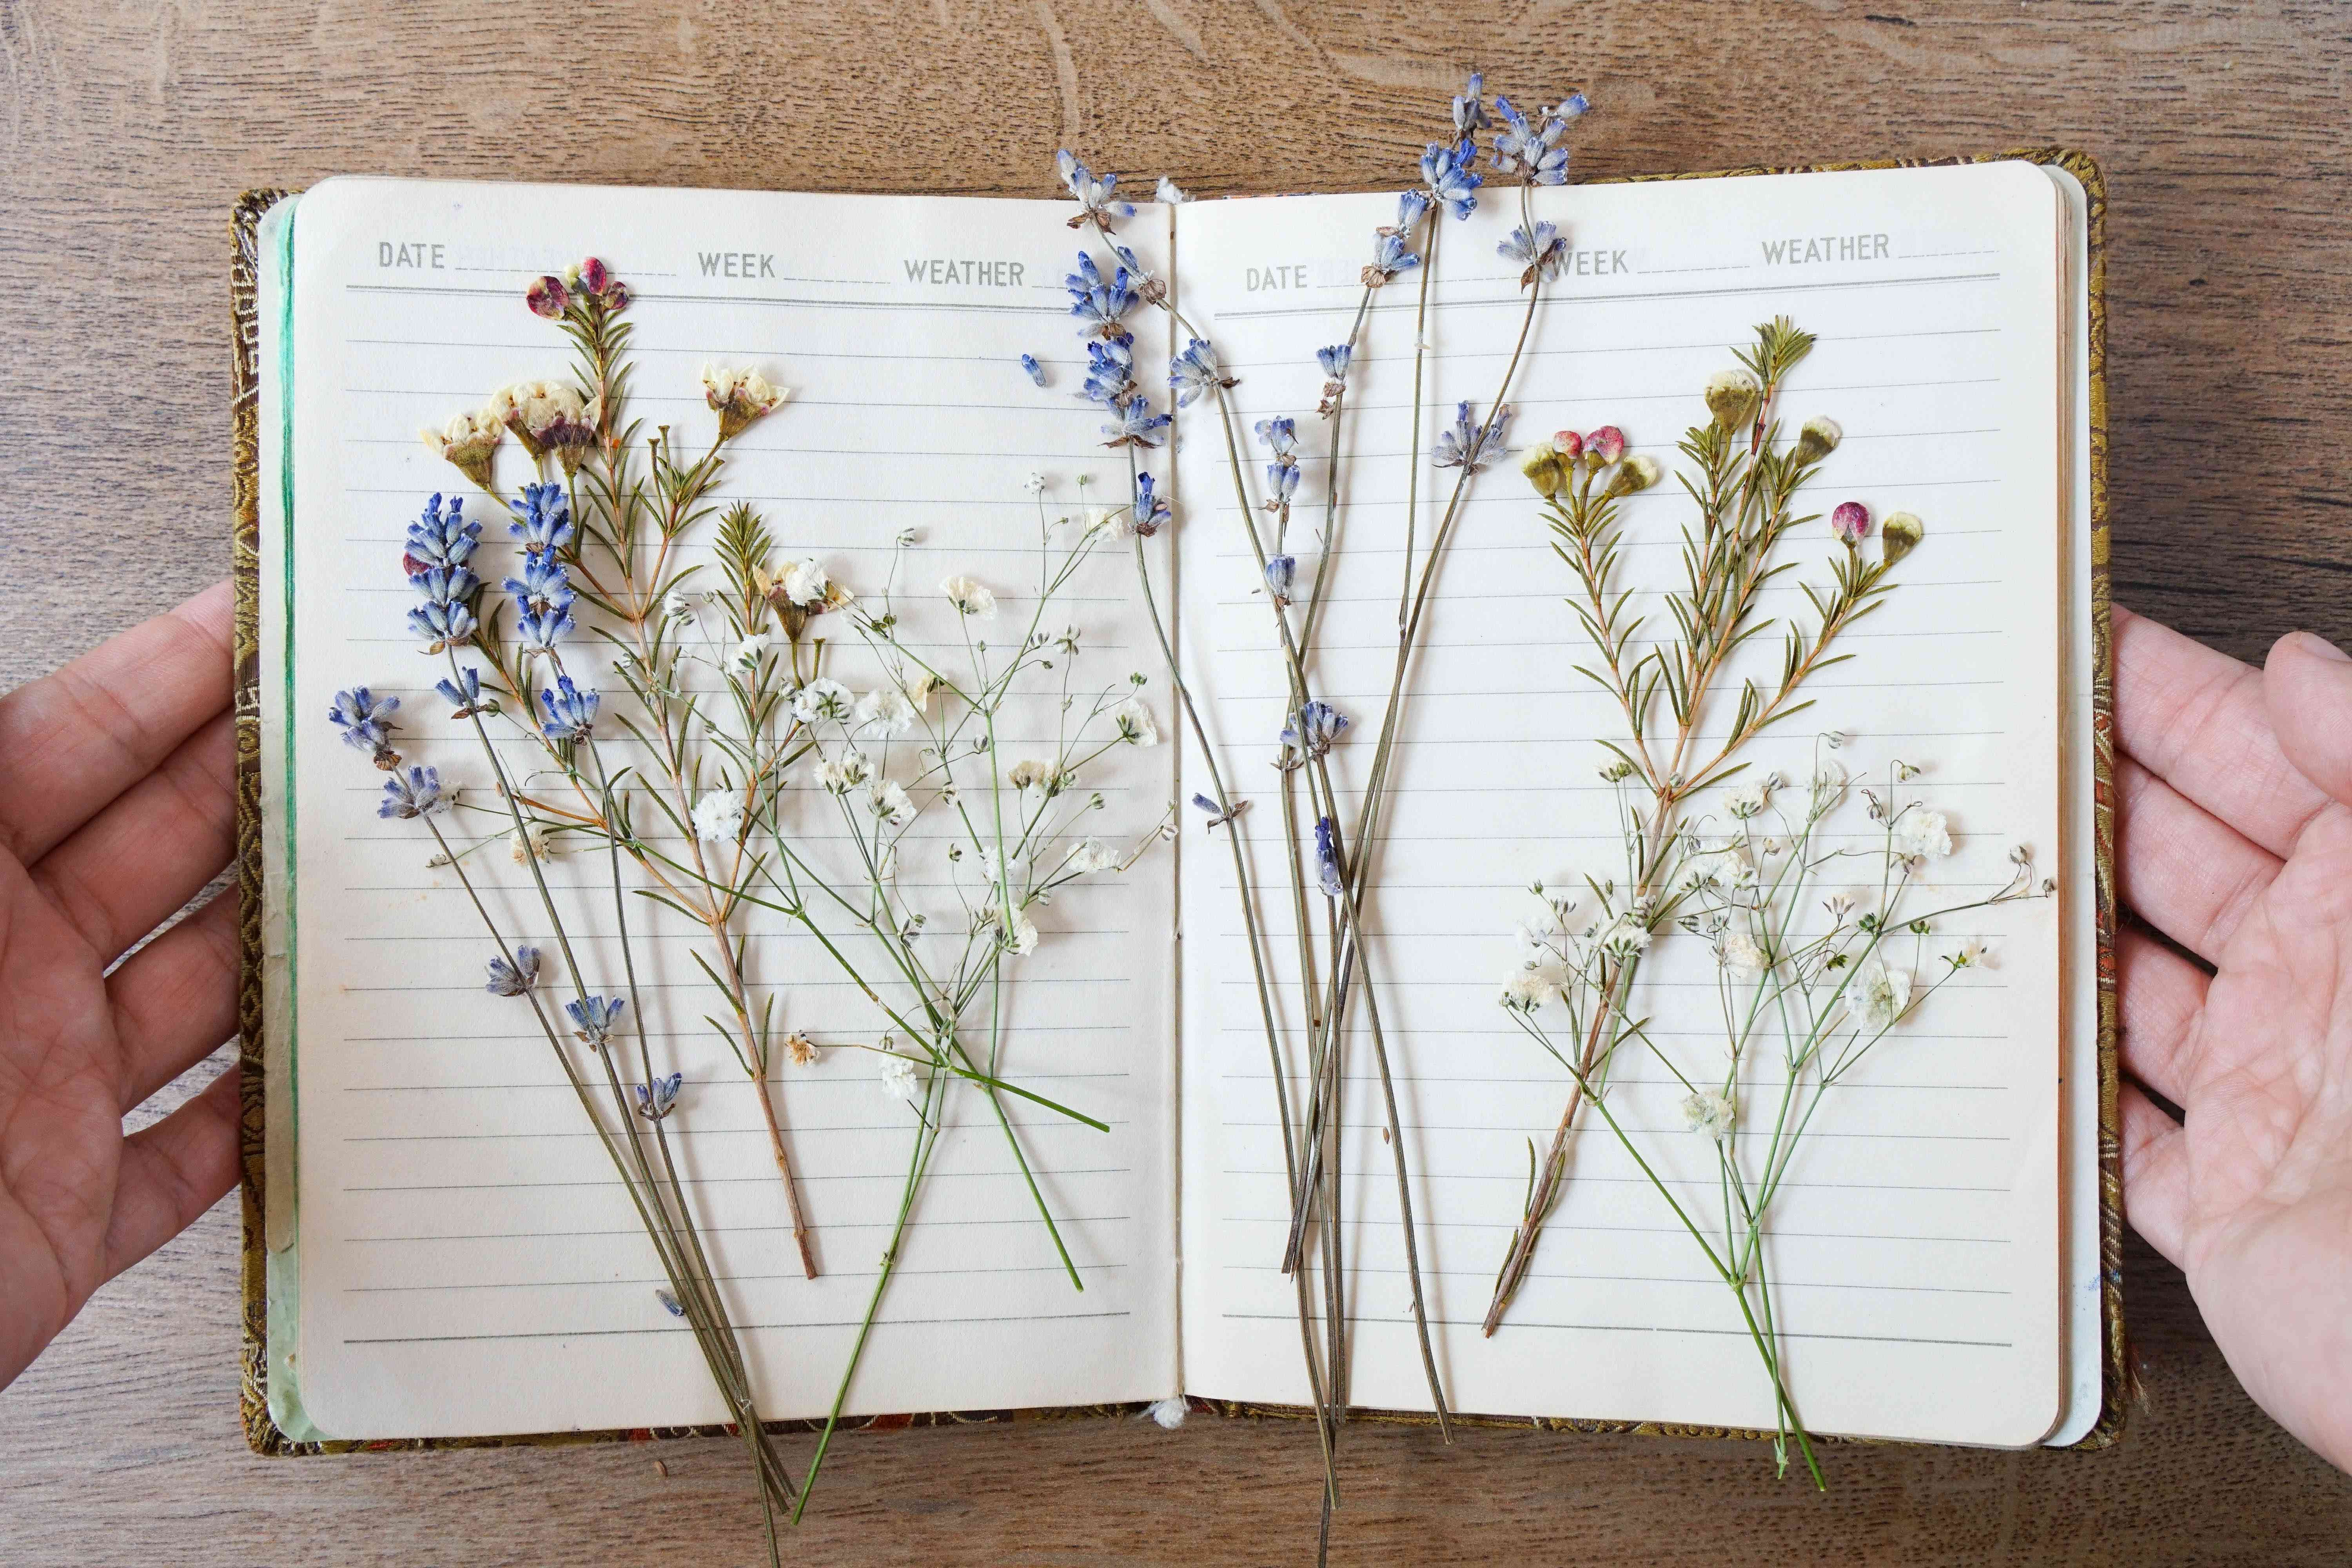 hand opens up day planner filled with dried pressed wildflowers